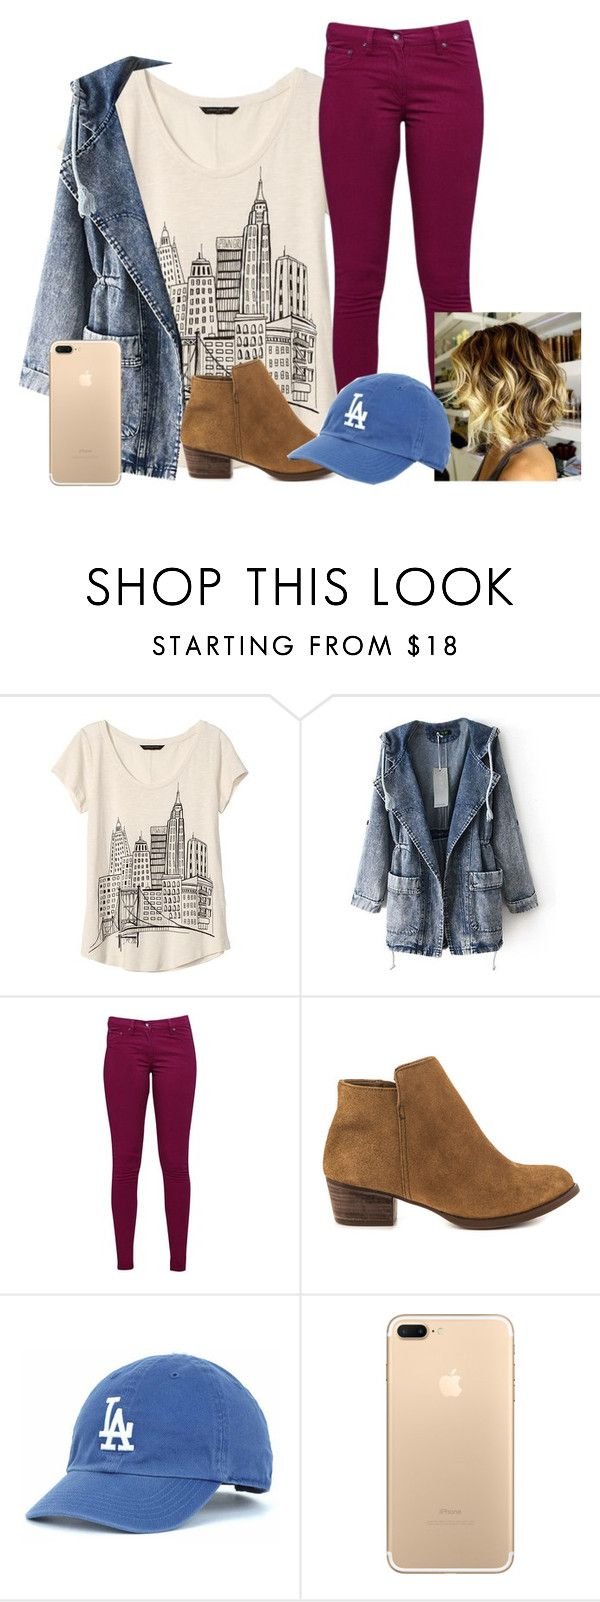 """I Love This Outfit!! Who else would wear it?"" by dejonggirls ❤ liked on Polyvore featuring Banana Republic, Great Plains and Jessica Simpson"